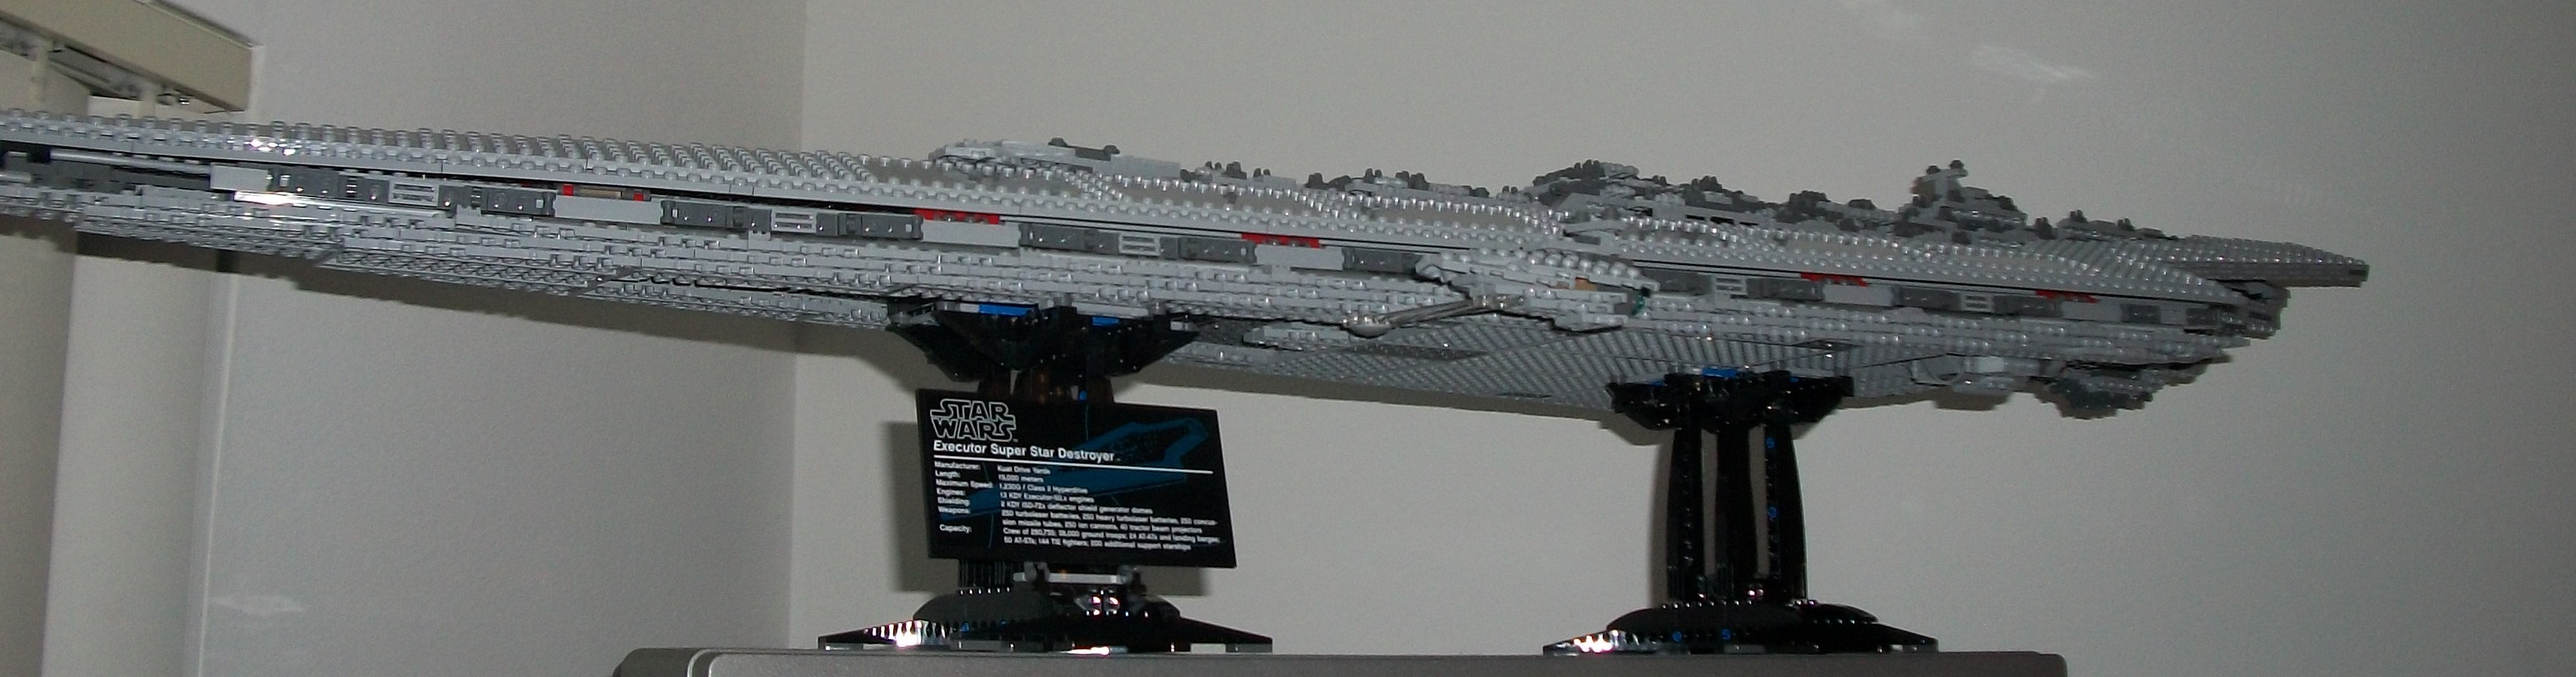 Star Wars LEGO Ultimate Super Star Destroyer 10221